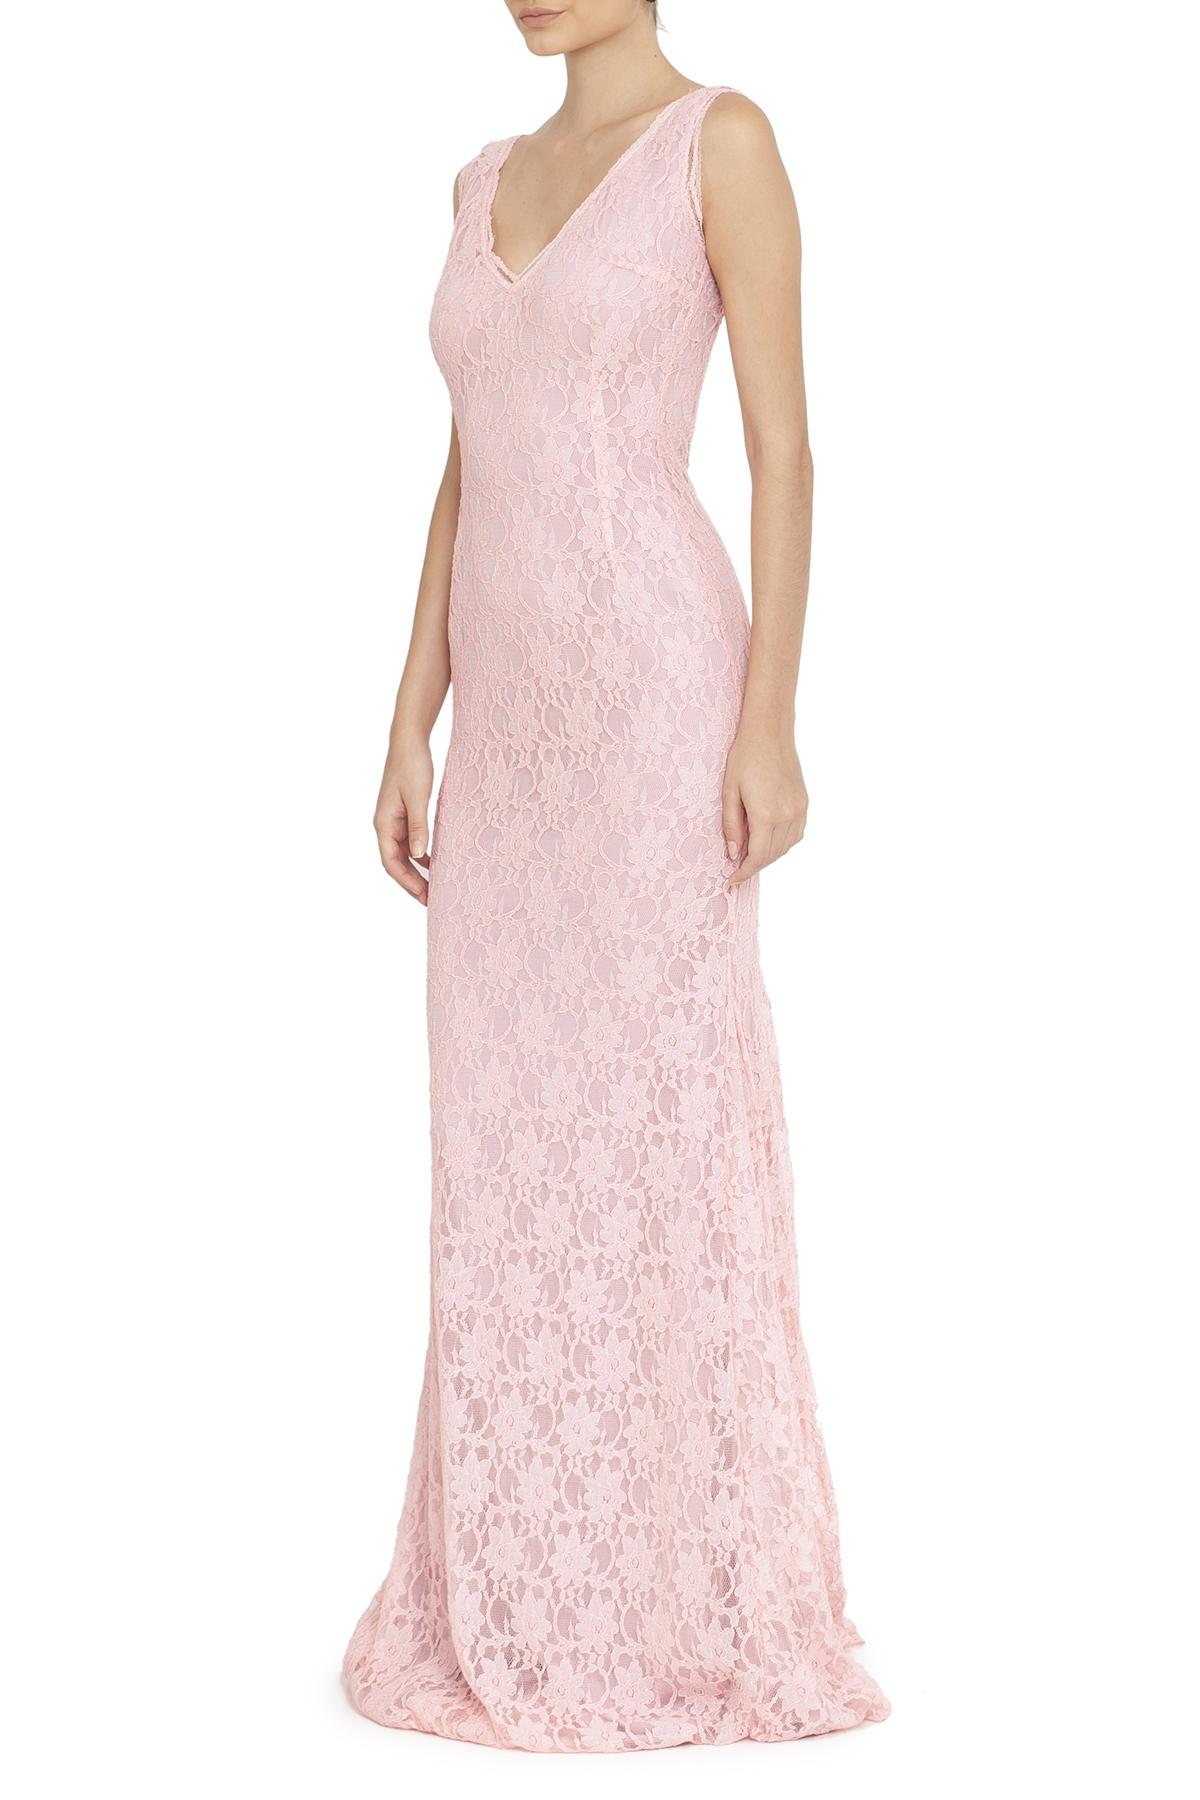 Vestido Romilda Light Pink Anamaria Couture